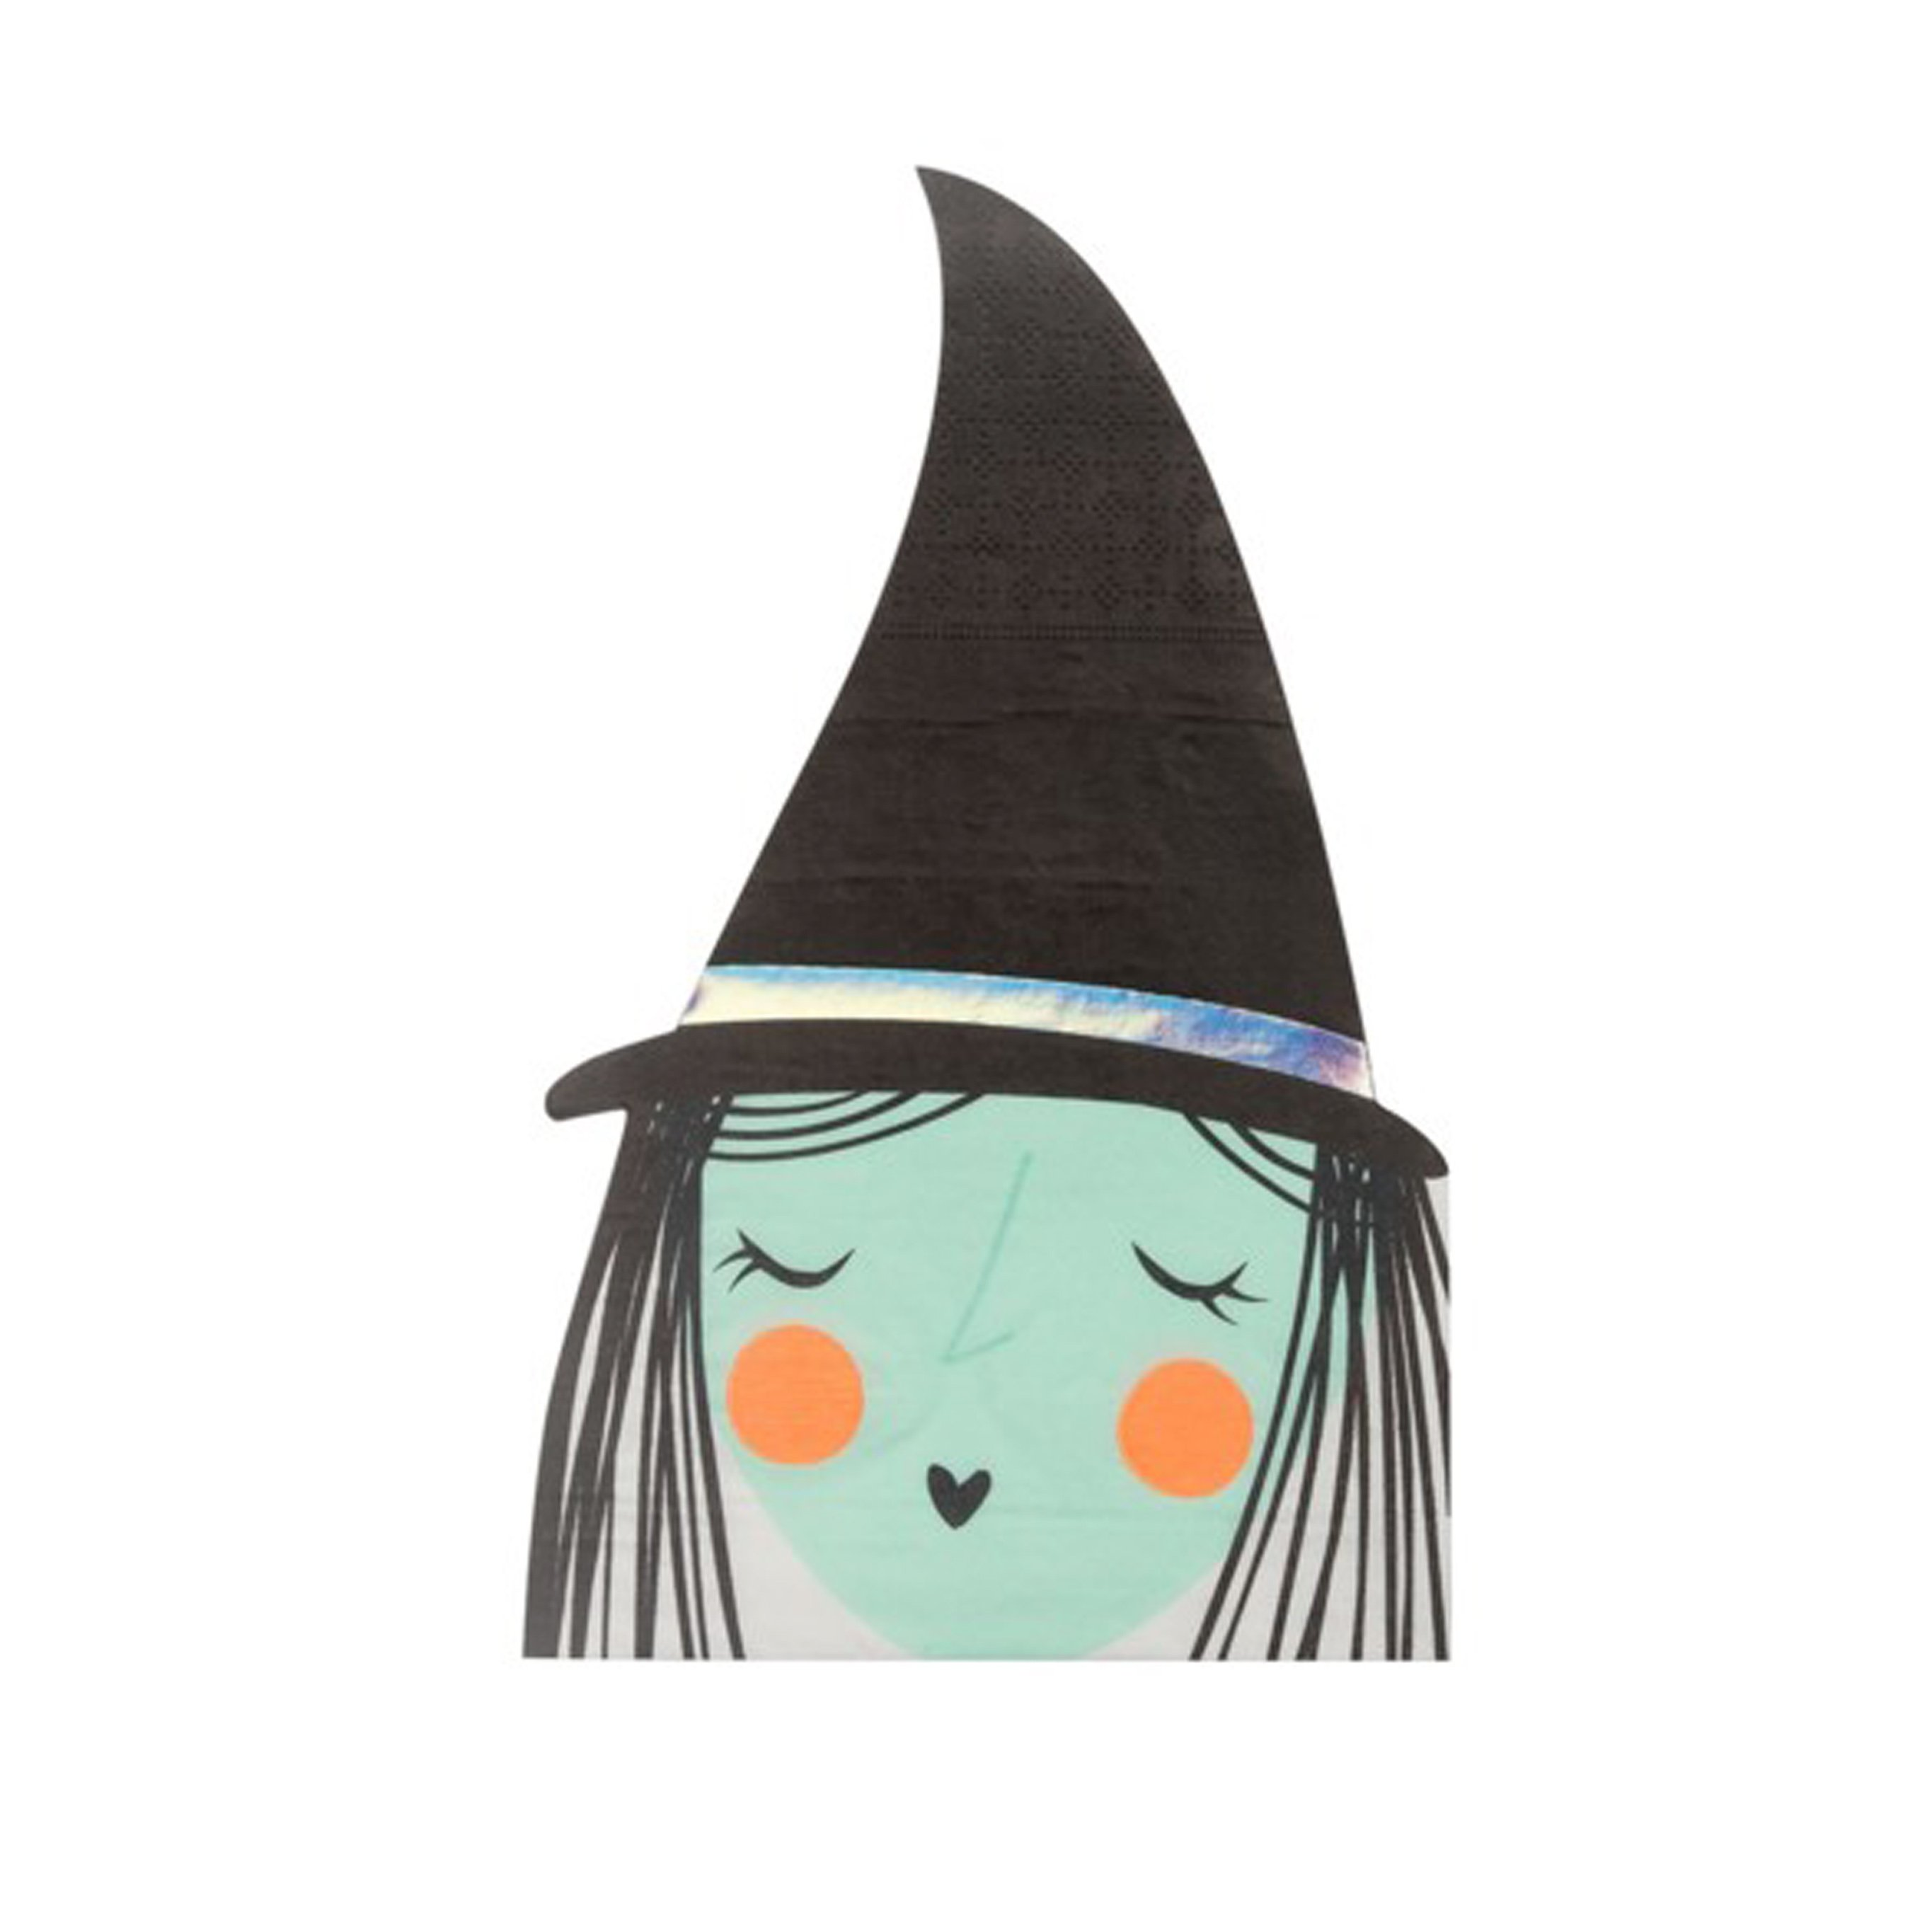 BUY ME / NEW ITEM $8.99 each Witch Paper Napkins - 16 Pack